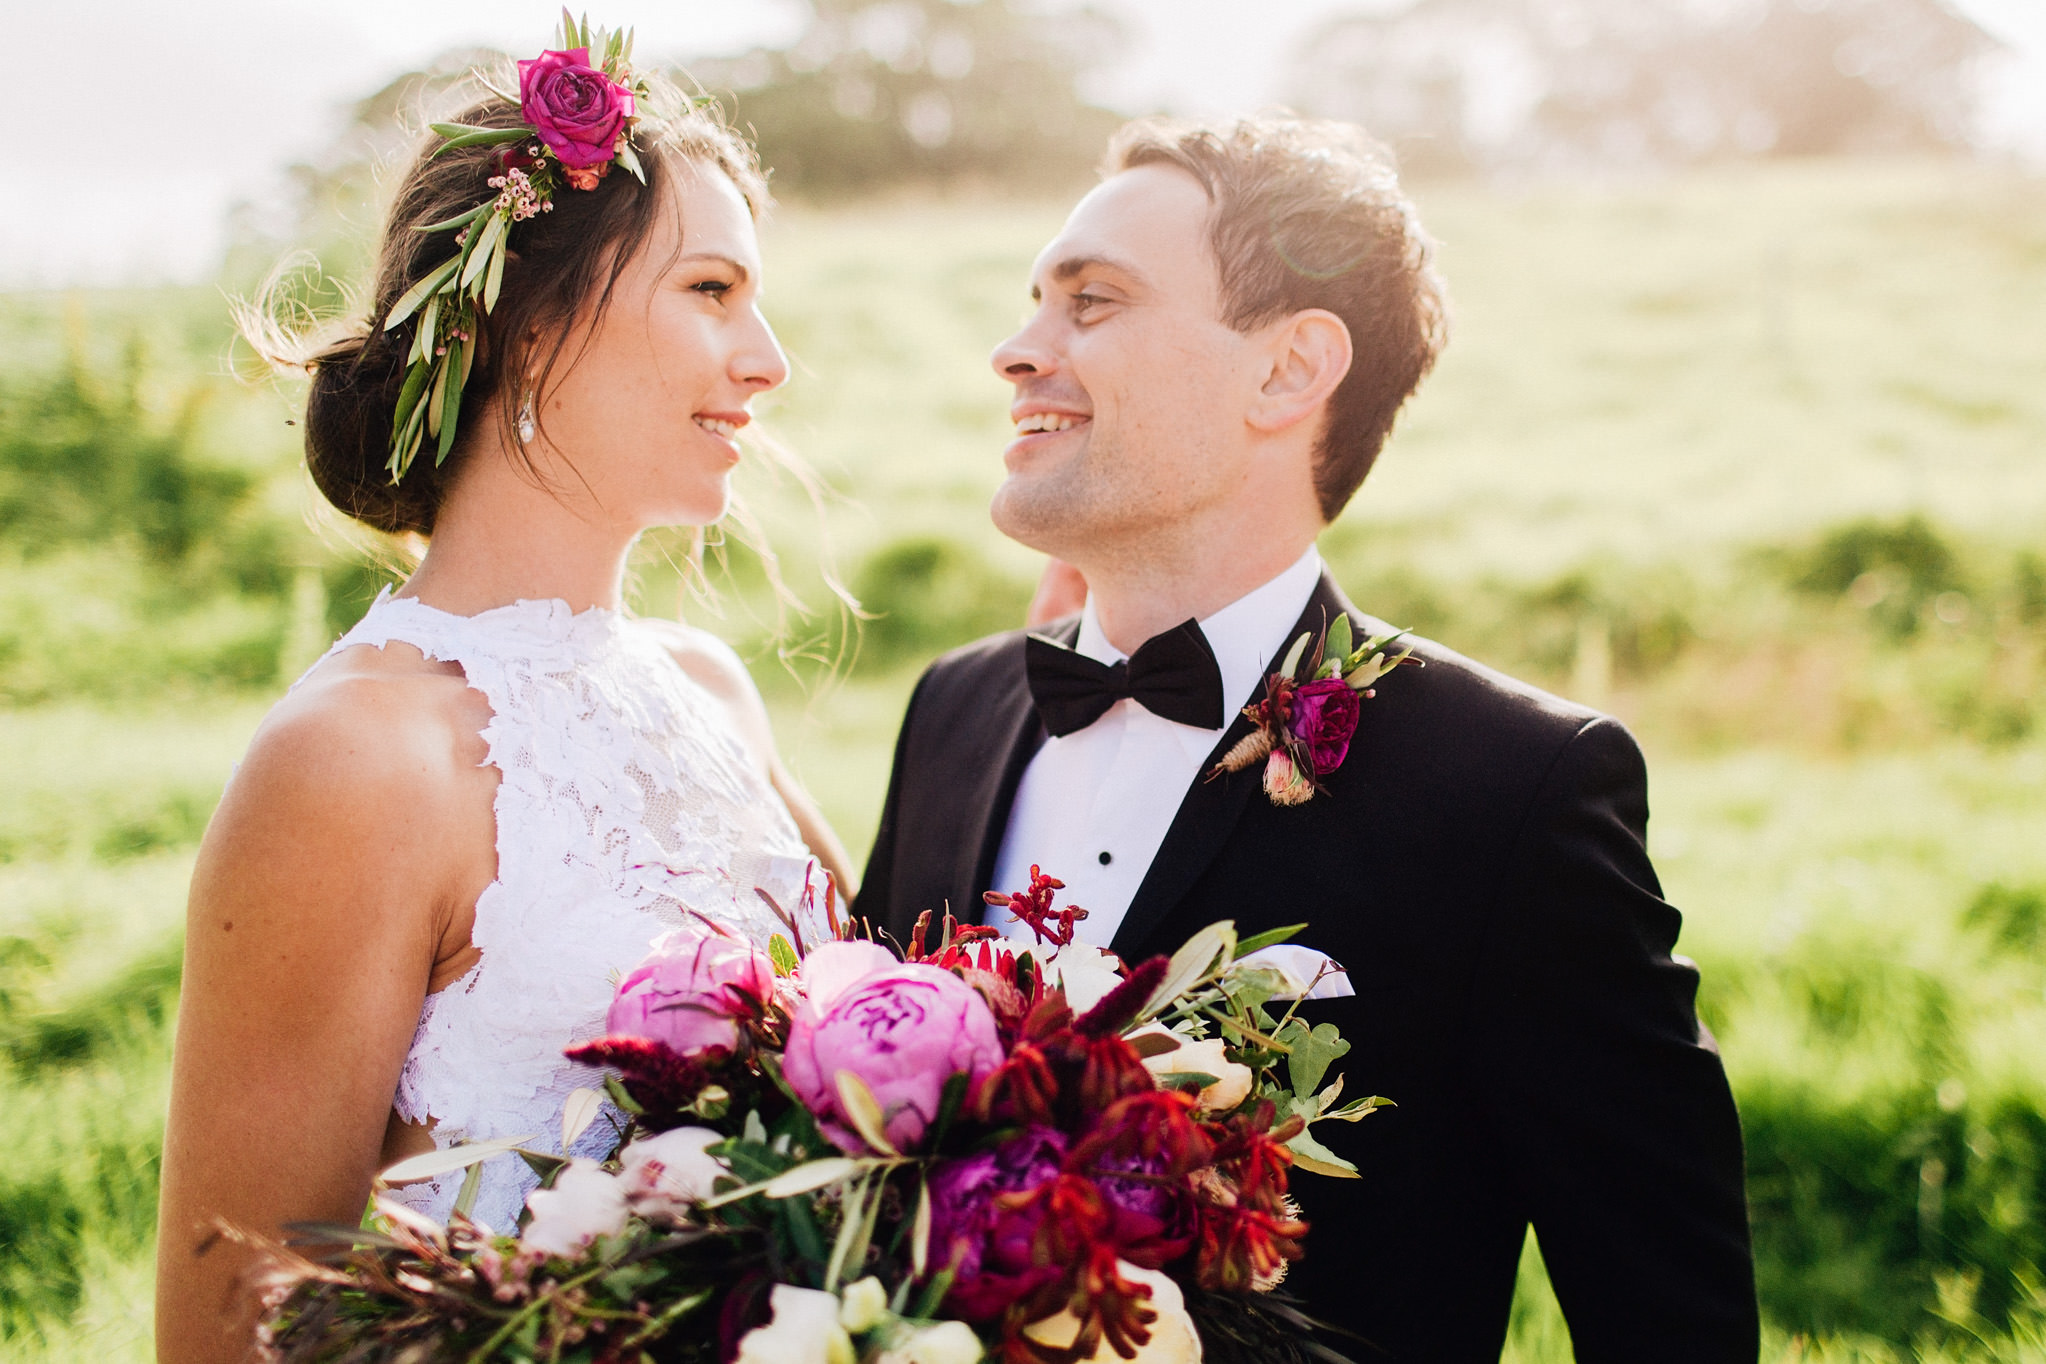 TocalHomestead_WeddingPhotography_LaurenAnnePhotography-1107.jpg